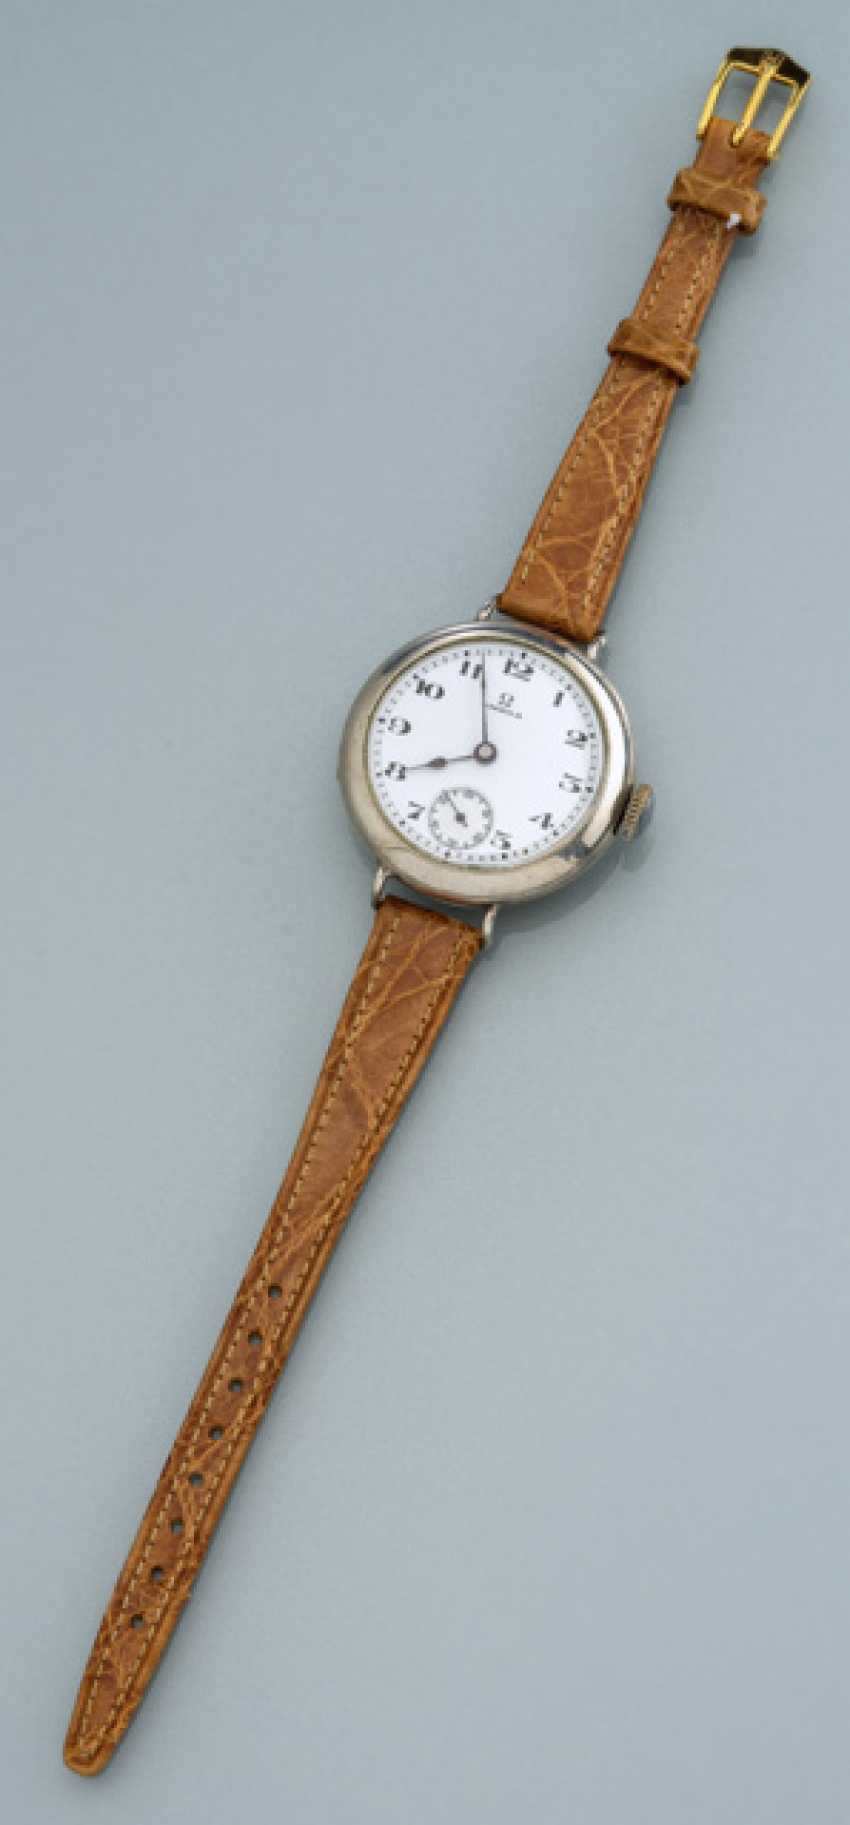 Early Omega Email Officer Wrist Watch - photo 1